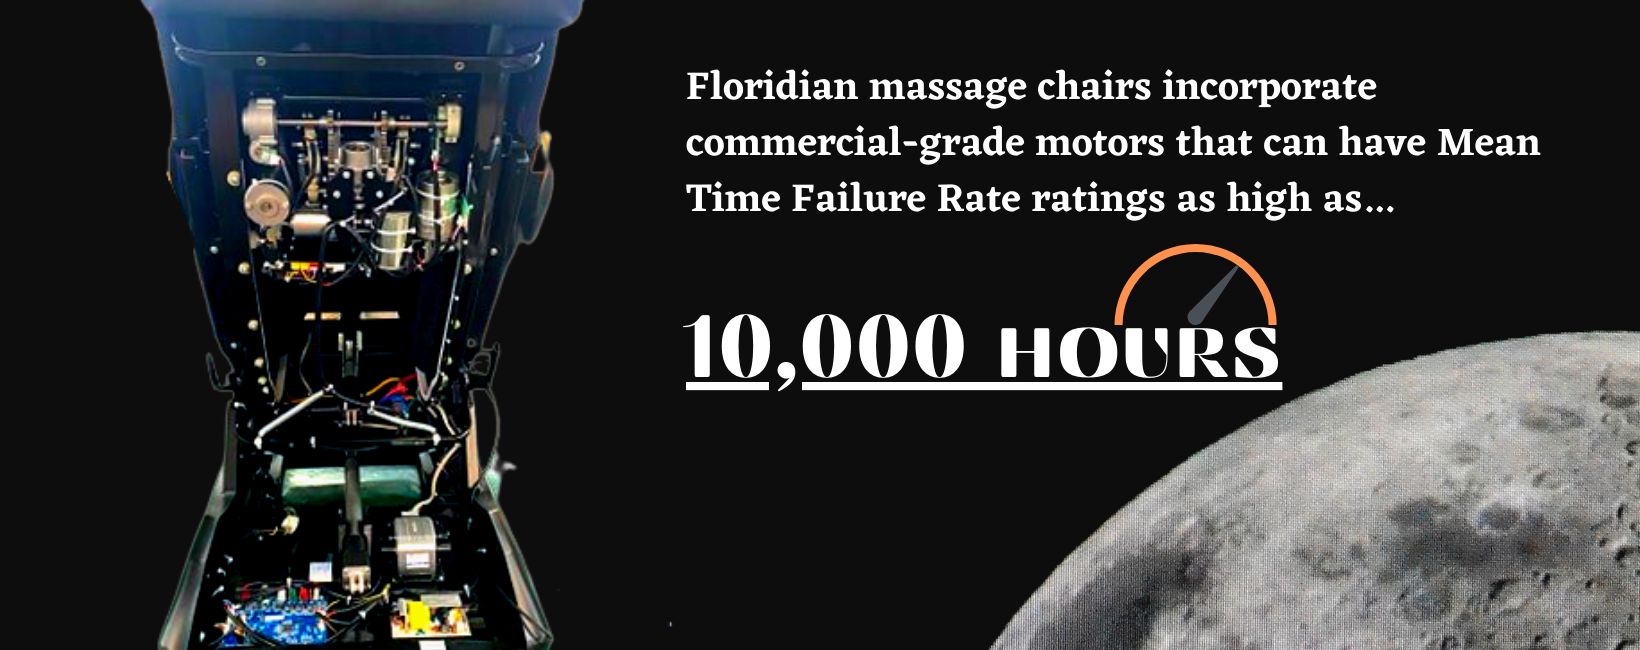 How is the Lifespan of the Floridian Massage Chairs?